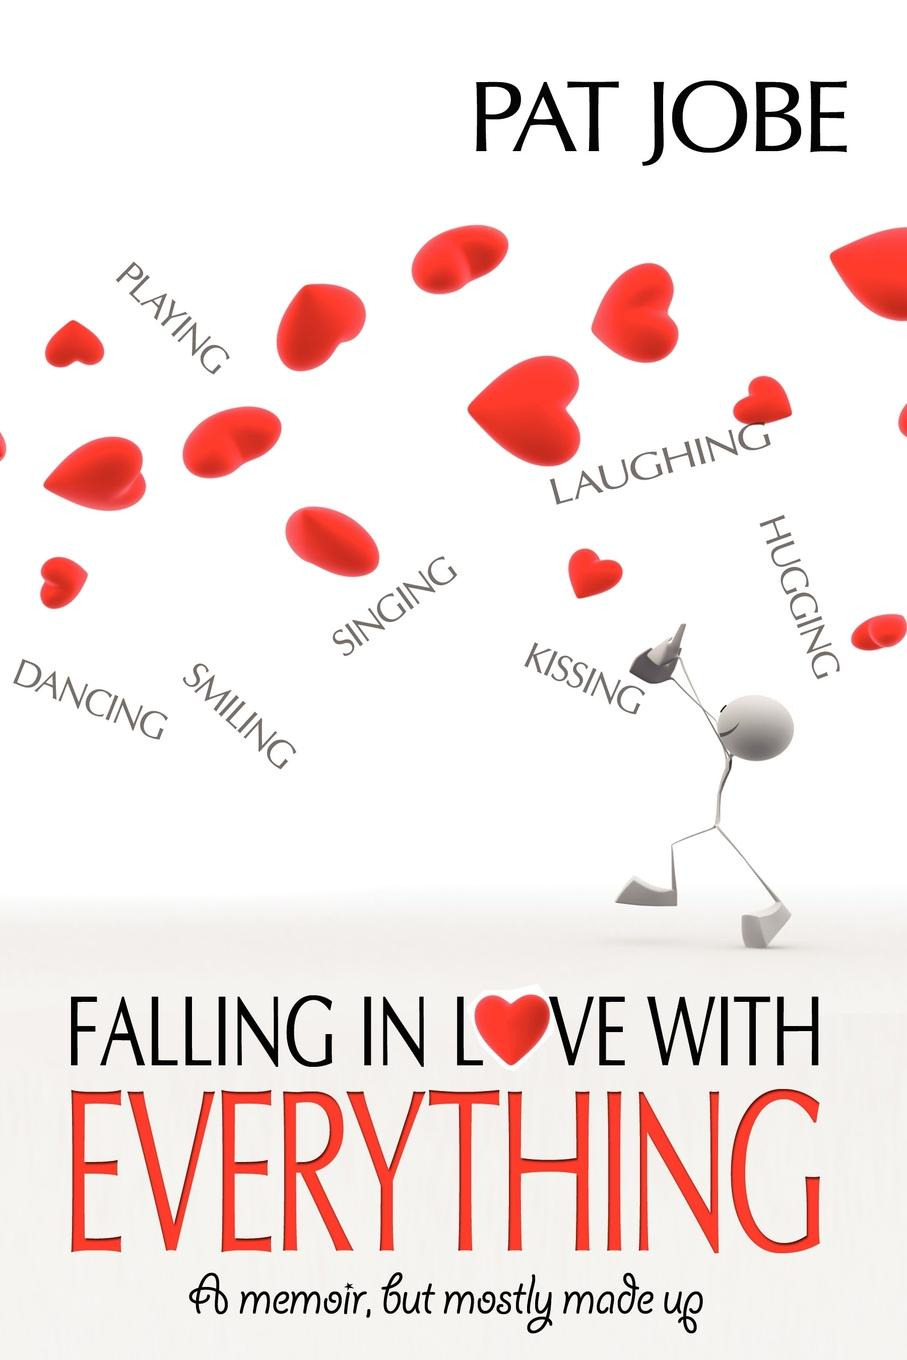 Pat Jobe Falling In Love With Everything. A memoir, but mostly made up made with love толстовка